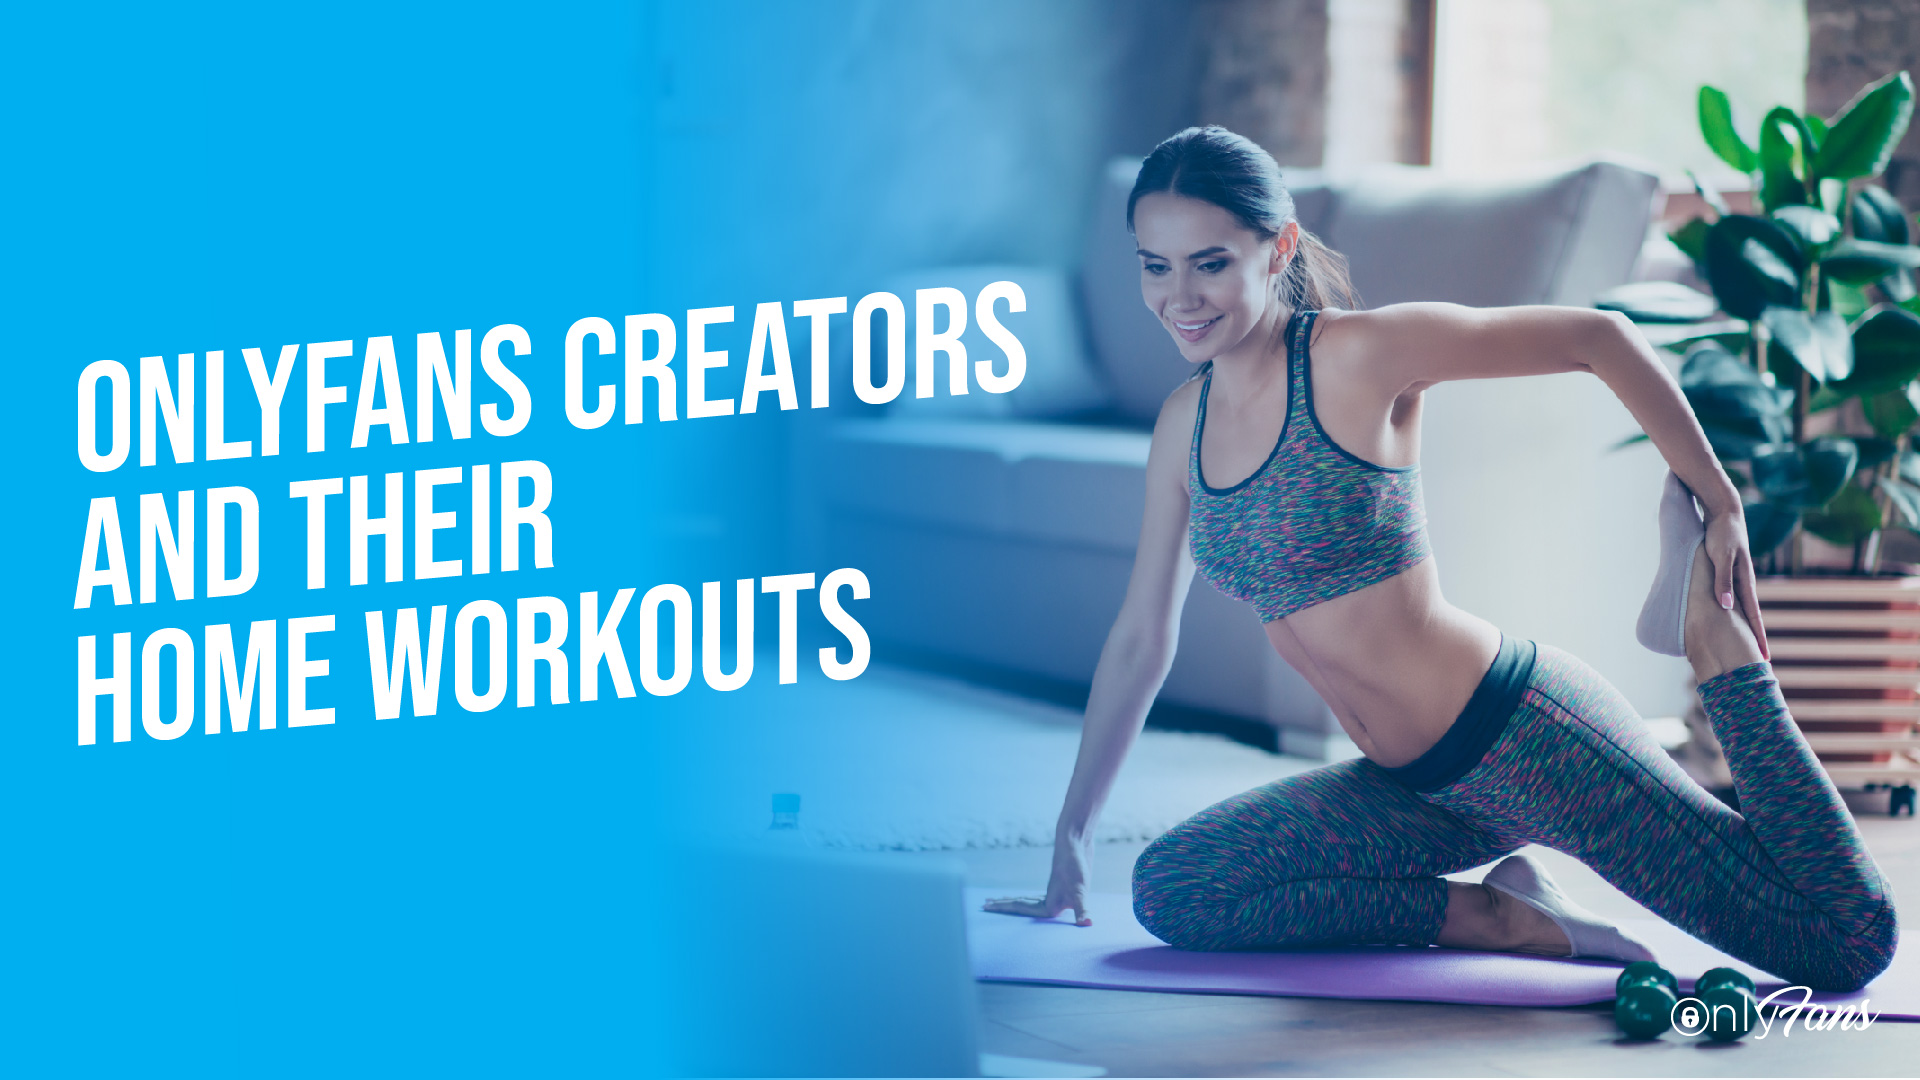 OnlyFans creators home workouts